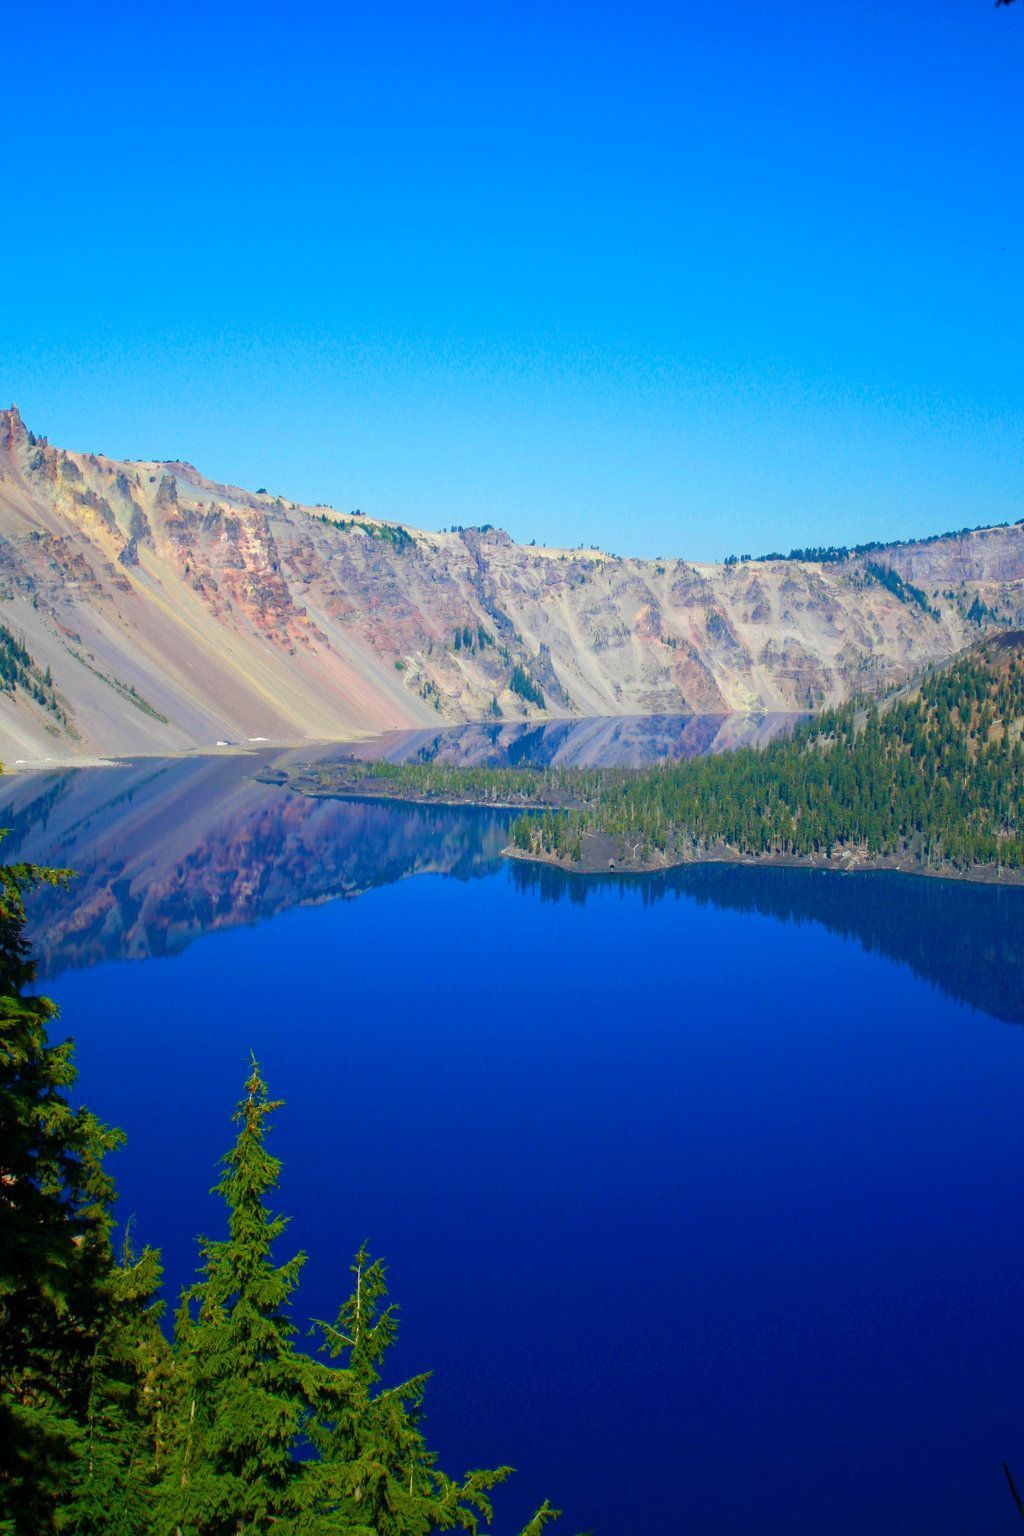 Deepest Blue Crater Lake, Oregon.I want to go see this place one day.Please check out my website thanks. www.photopix.co.nz #craterlakeoregon Deepest Blue Crater Lake, Oregon.I want to go see this place one day.Please check out my website thanks. www.photopix.co.nz #craterlakeoregon Deepest Blue Crater Lake, Oregon.I want to go see this place one day.Please check out my website thanks. www.photopix.co.nz #craterlakeoregon Deepest Blue Crater Lake, Oregon.I want to go see this place one day.Pleas #craterlakeoregon